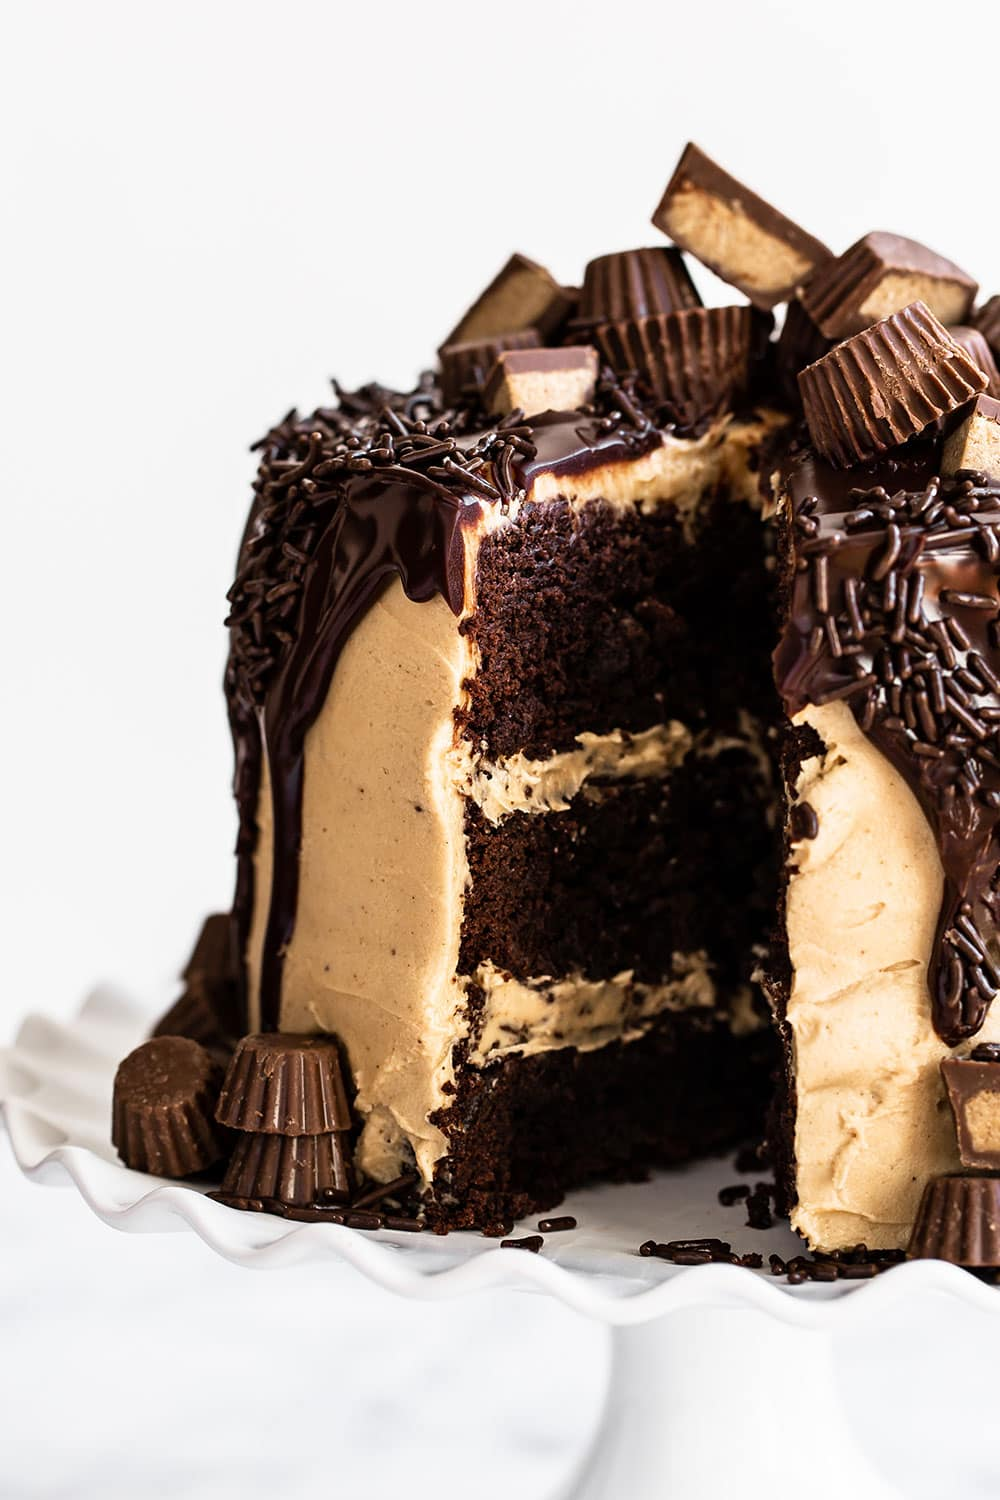 Peanut butter brownie cake on a cake stand topped with dipping chocolate ganache and peanut butter cups with a slice taken out